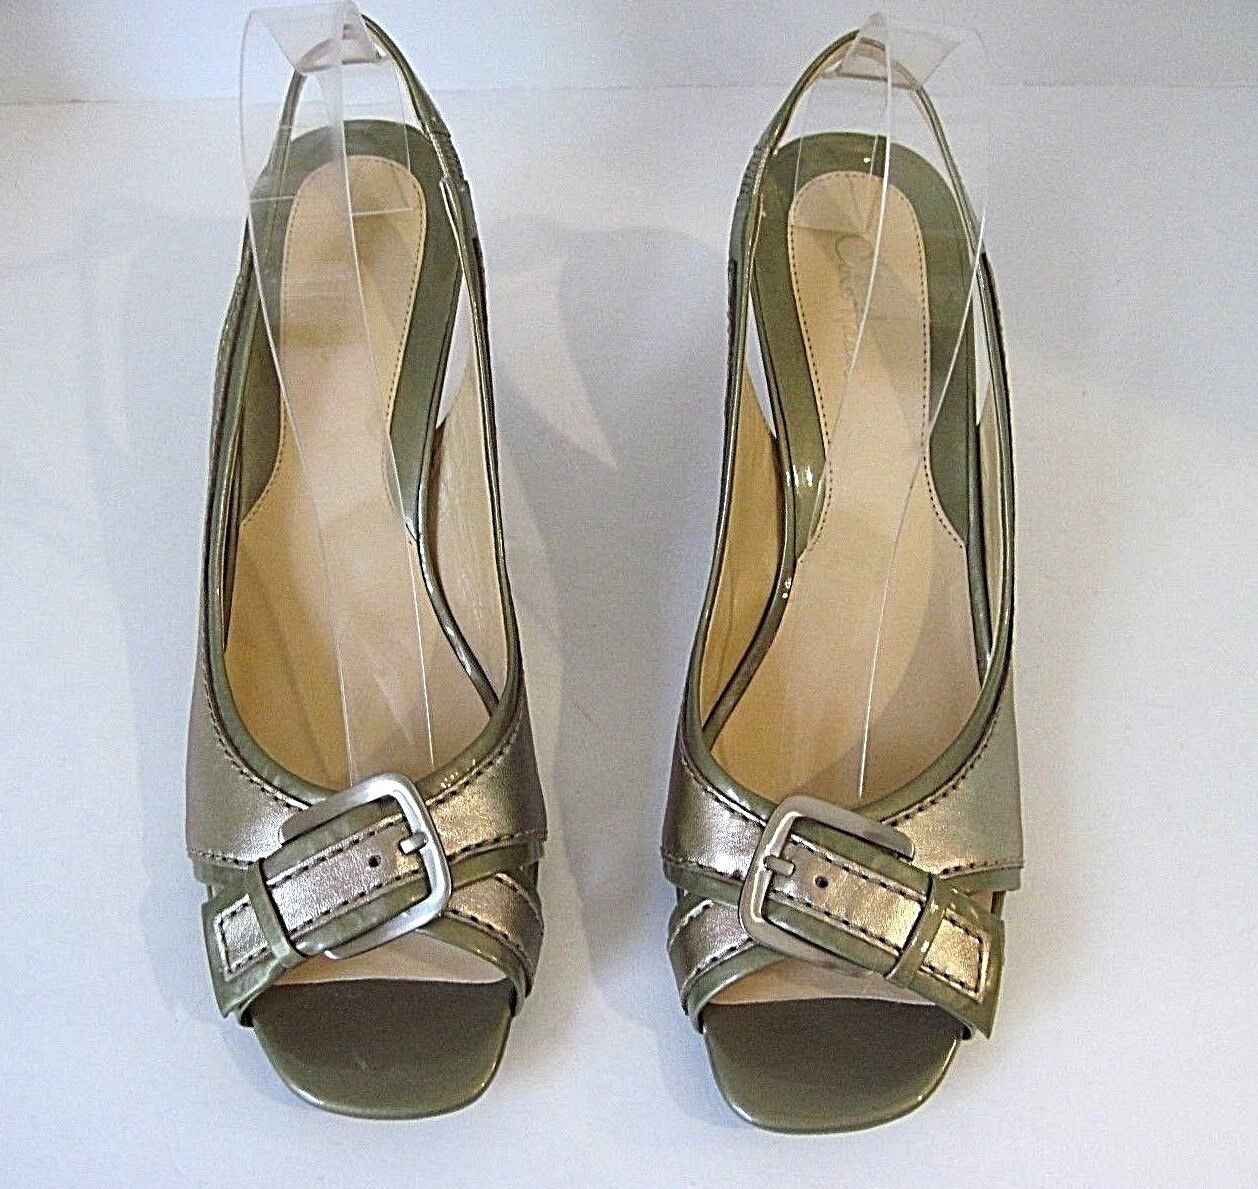 Cole Haan Gold Leather Leather Leather  Patent Leather Slingback Open Toe Heels Pumps 9.5B, NEW 166975